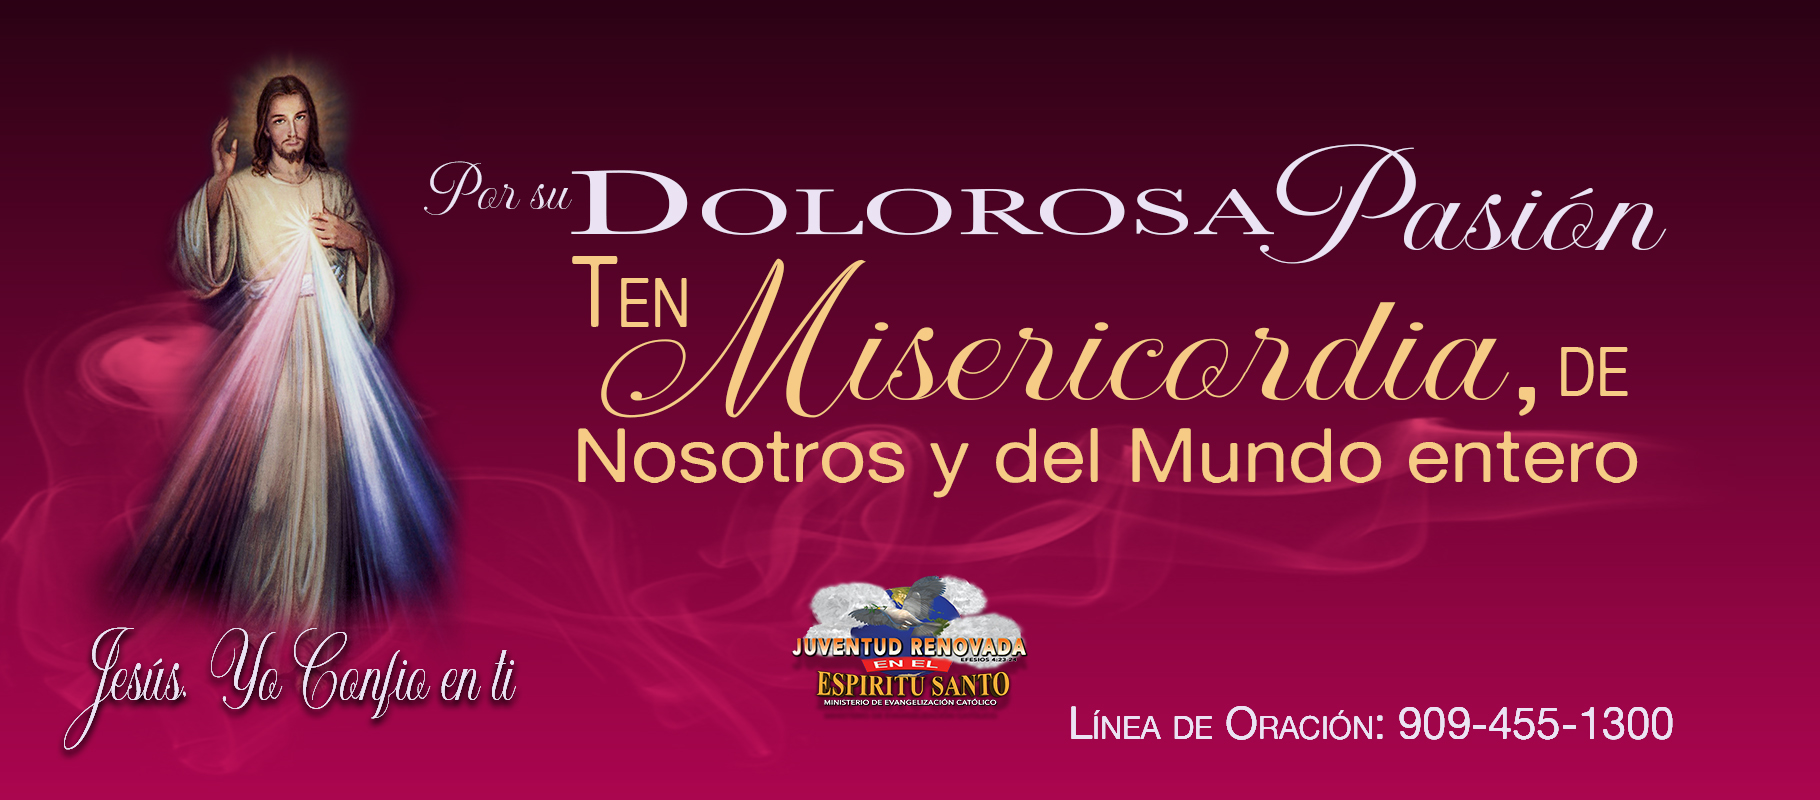 MISERICORDIA WEB BANNER